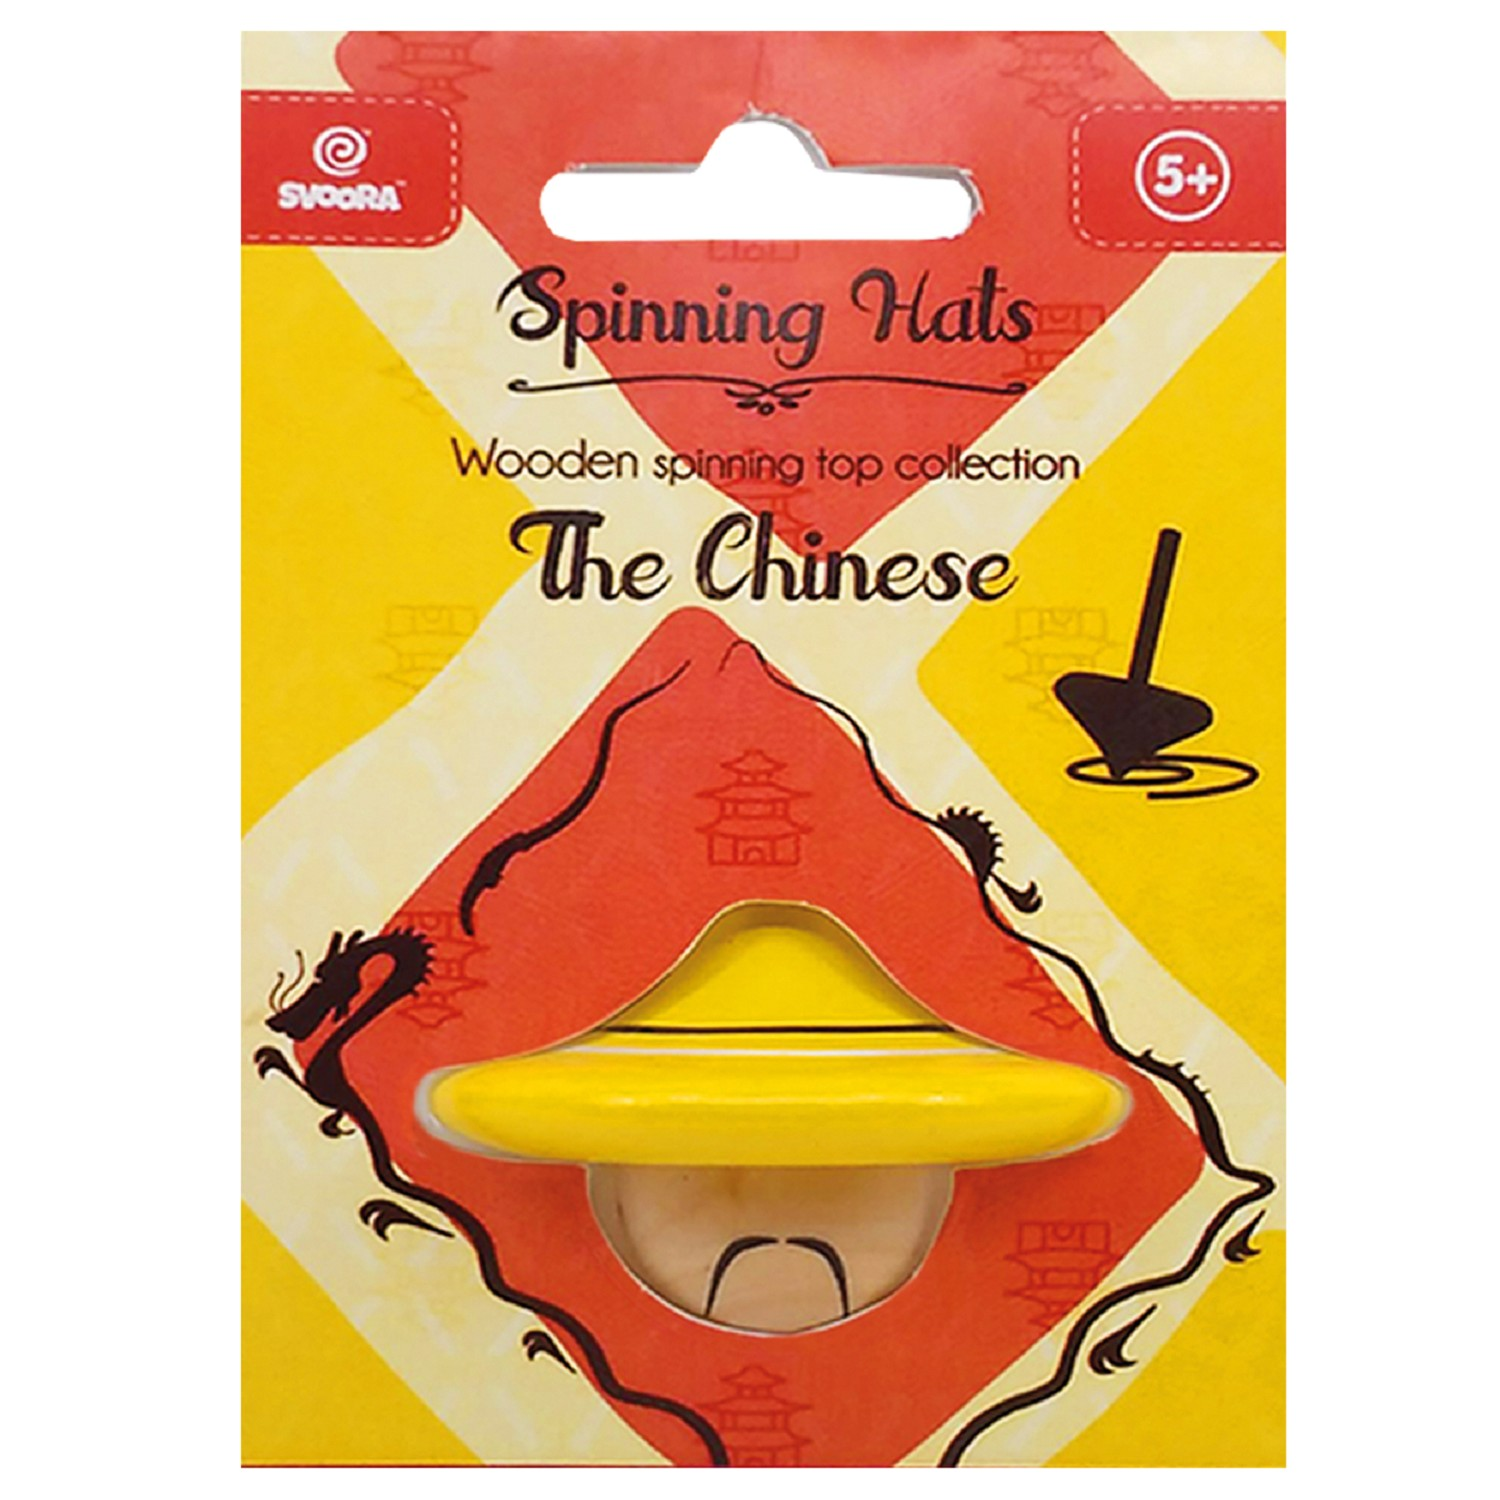 Titirez din lemn - Spinning Hats! The Chinese thumbnail